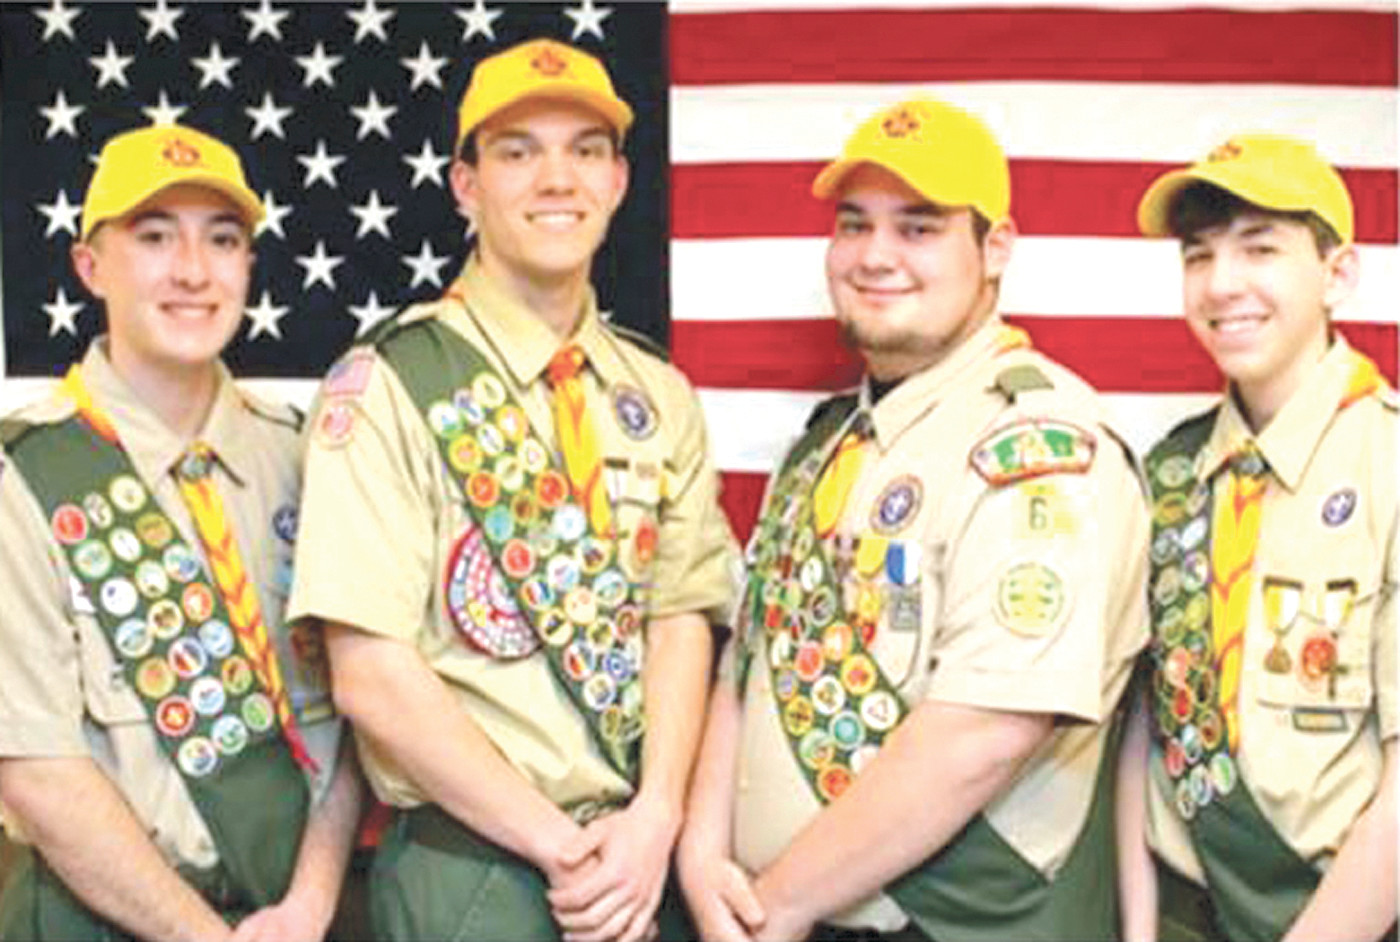 PROGRAM BOOK: At each Eagle Court Ceremony a program book is handed out with information on the new Eagle Scouts. On May 10, the following scouts celebrated their Eagle rank: Anthony Cardi, Constantine Coclin, Joshua Forgue and Daniel White.